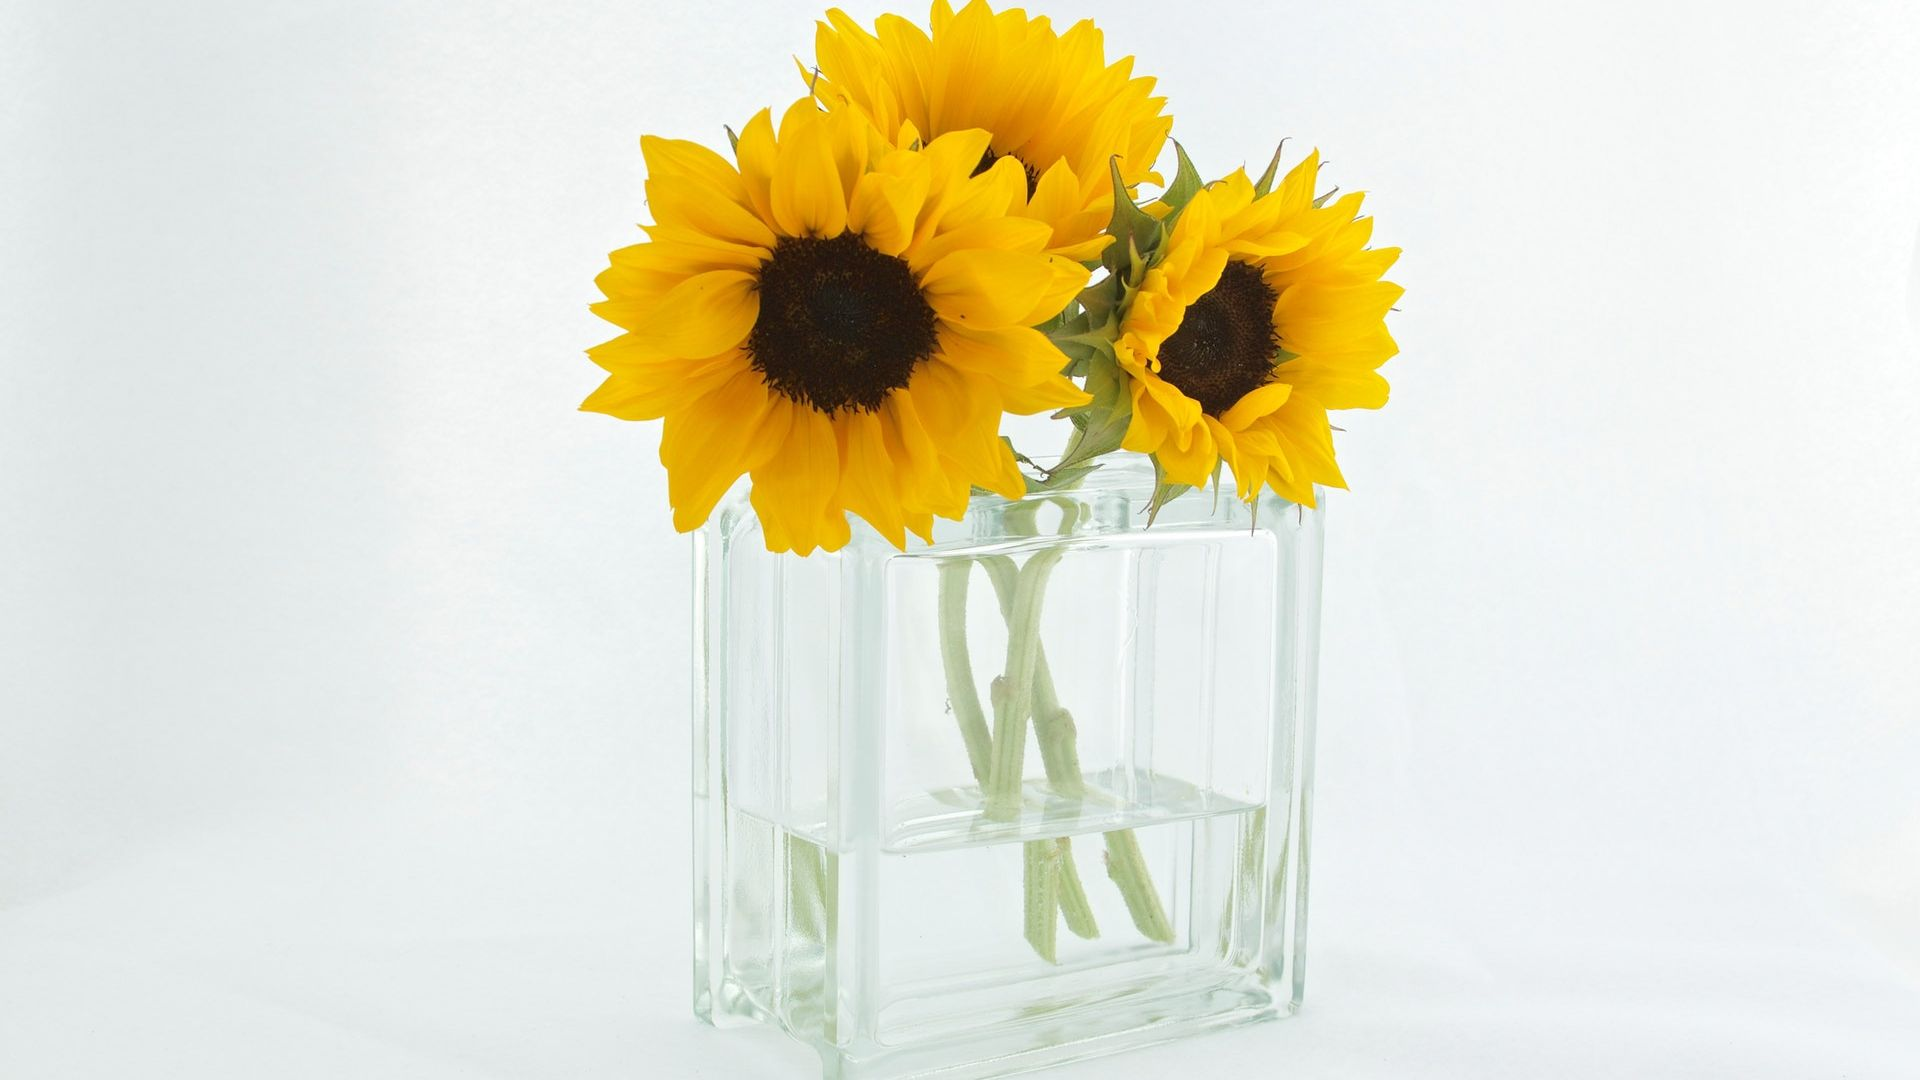 prime,in,sunflower,blossom,efflorescence,vase,helianthus,peak,flush,flowers,bloom,heyday